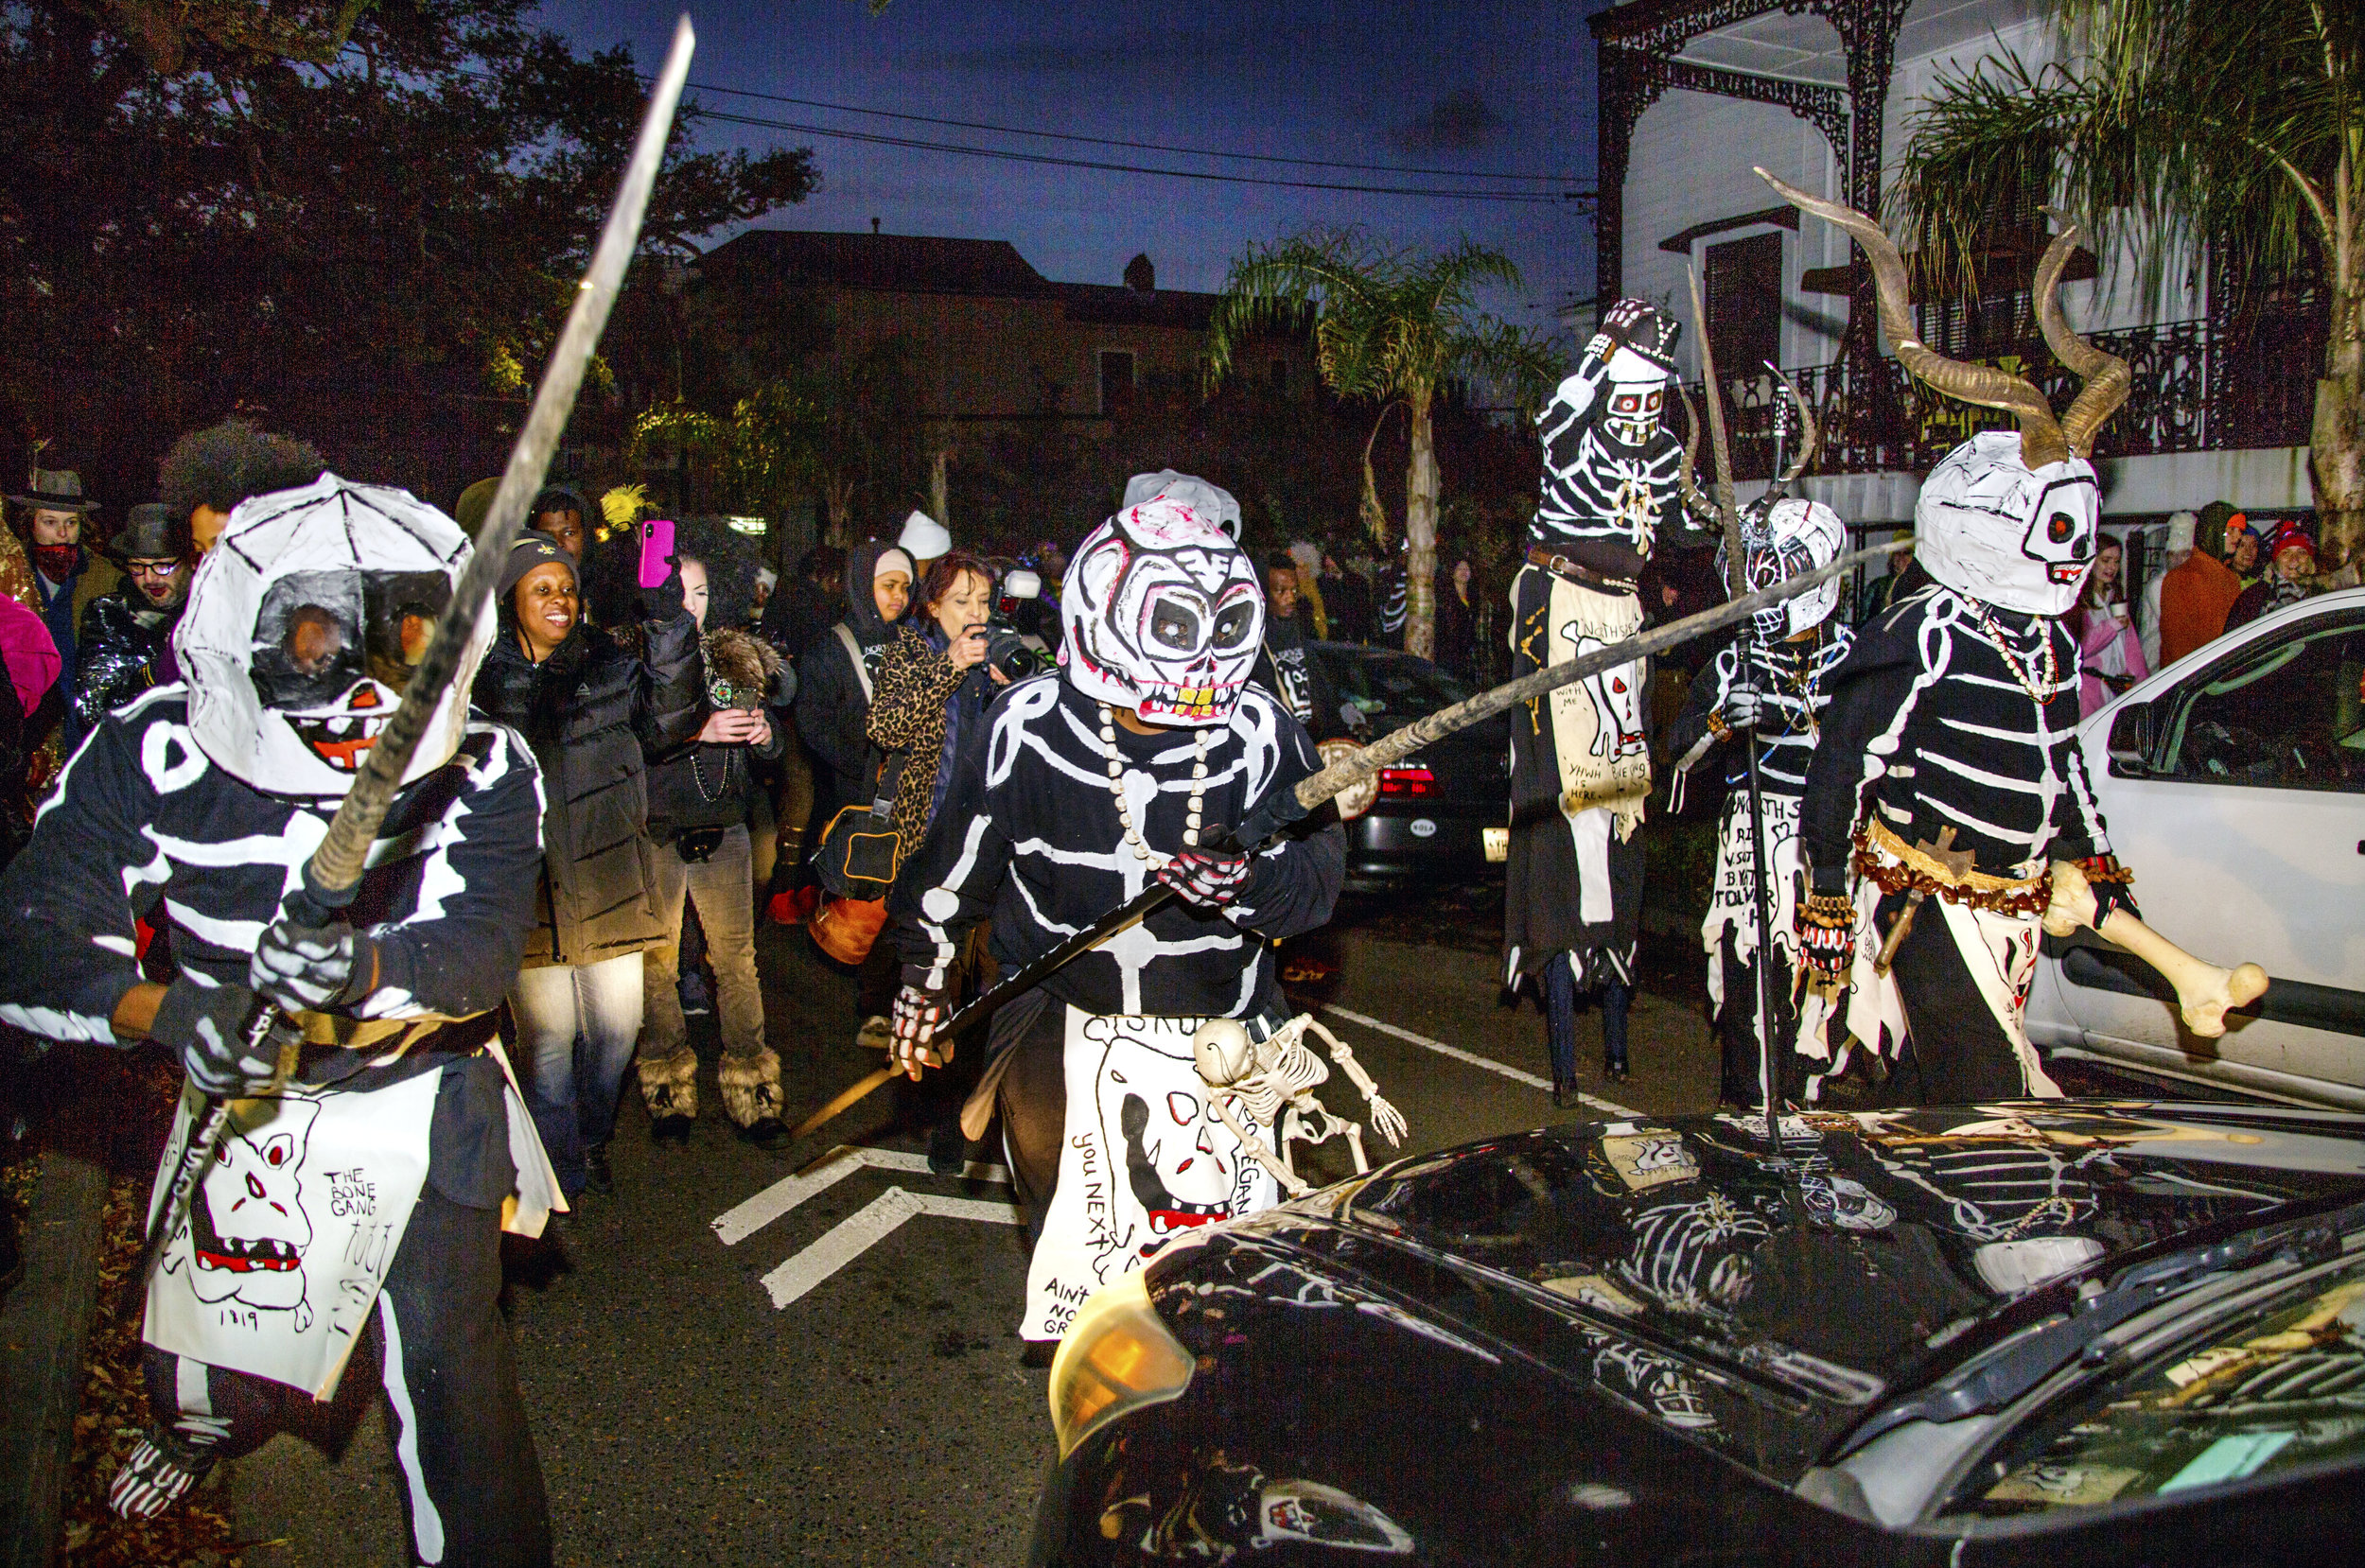 The North Side Skull and Bone Gang wake up the city on Mardi Gras morning and warn to get your life together before its too late.